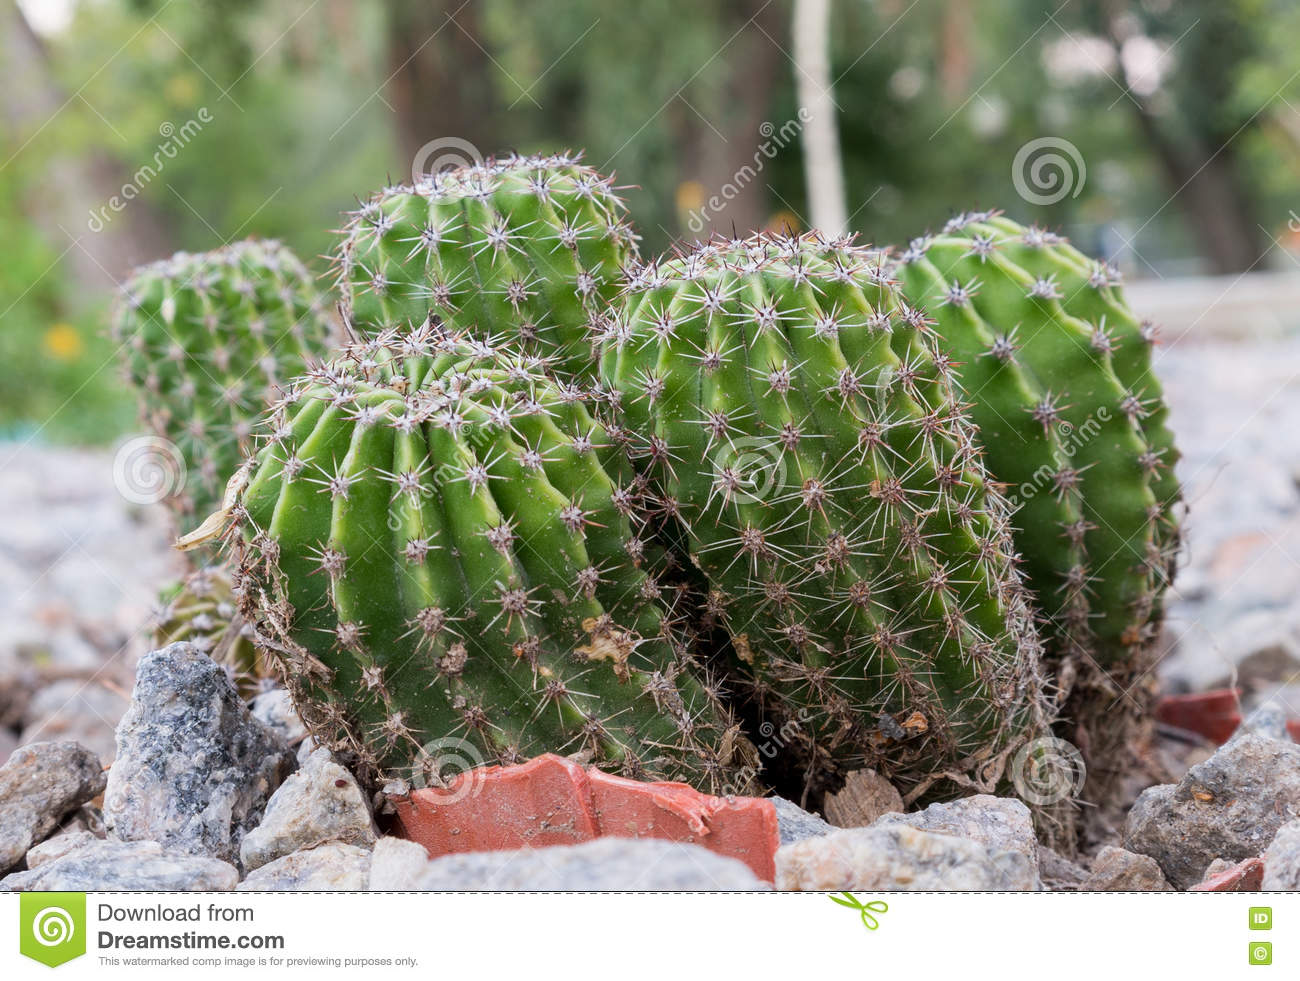 different types of cactus plants growing on rocks closeup stock